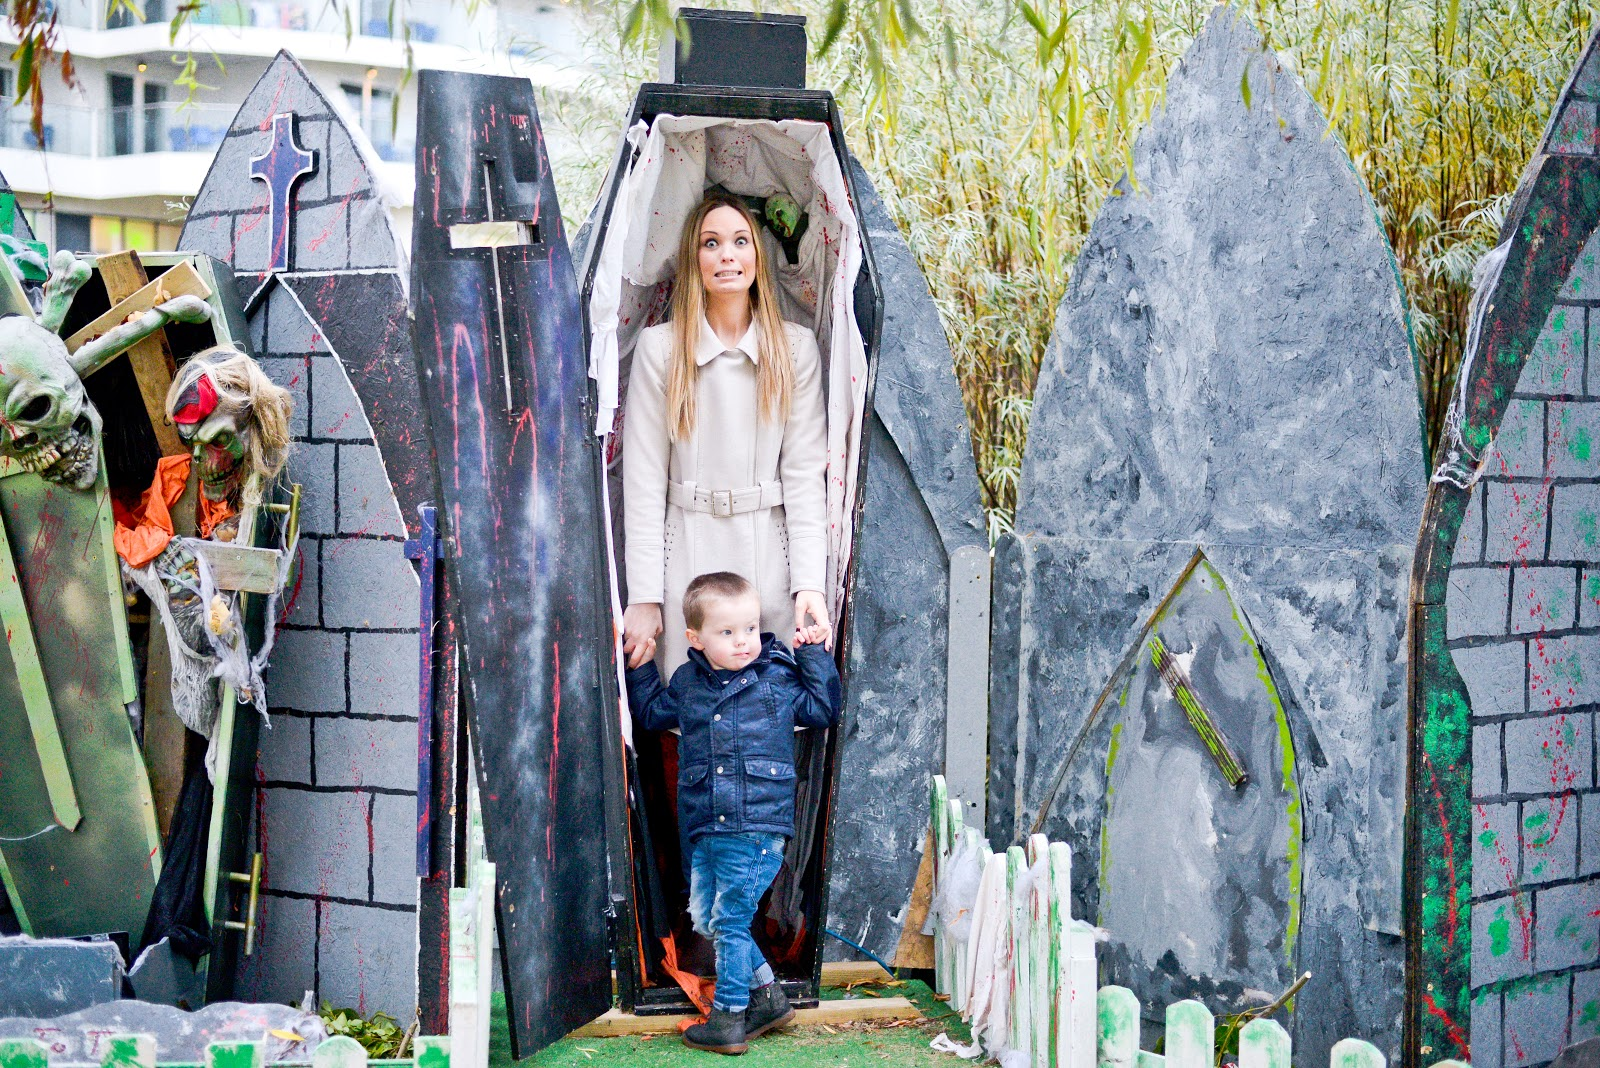 halloween at butlins, Butlins bognor regis just for tots review, butlins, butlins bognor regis, just for tots, uk holiday for kids under 5,